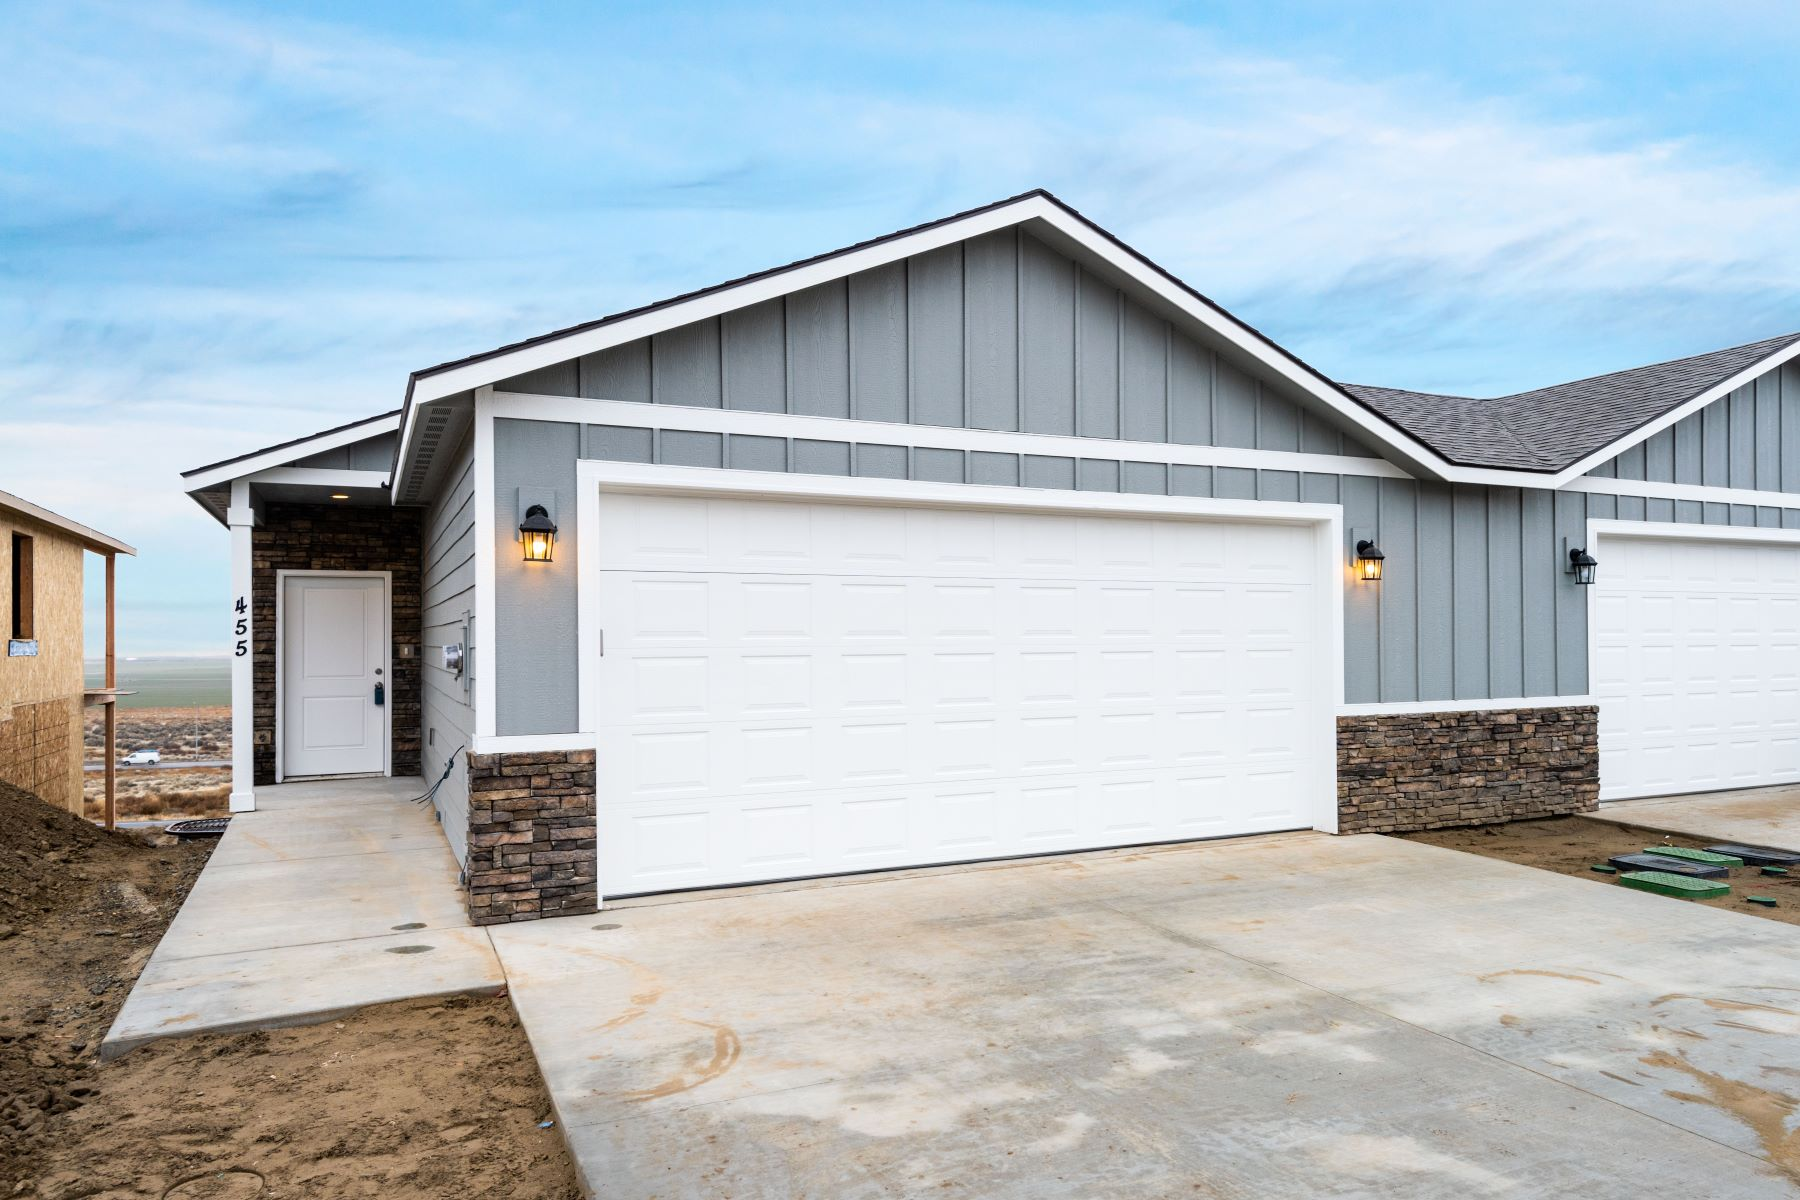 townhouses for Sale at New townhome community with views! 507 Bedrock Loop West Richland, Washington 99353 United States